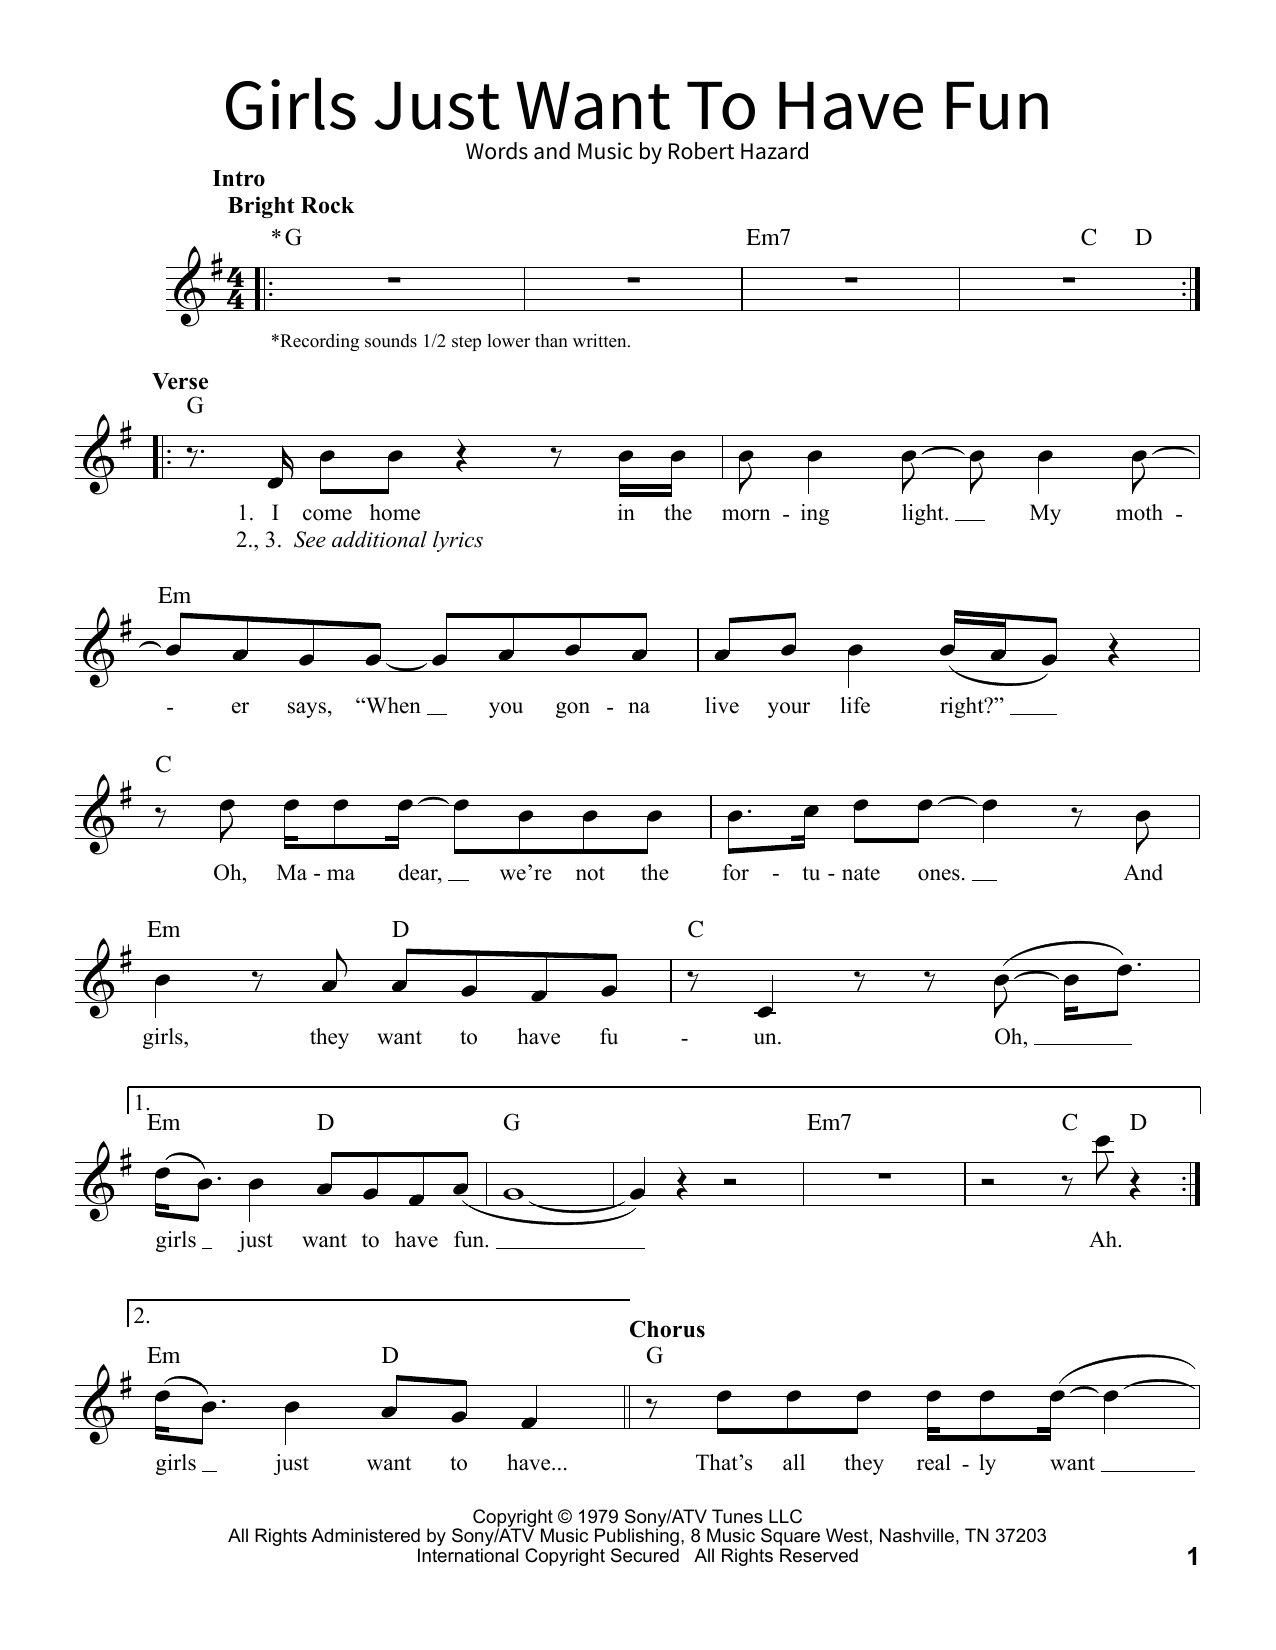 Girls Just Want To Have Fun Sheet Music